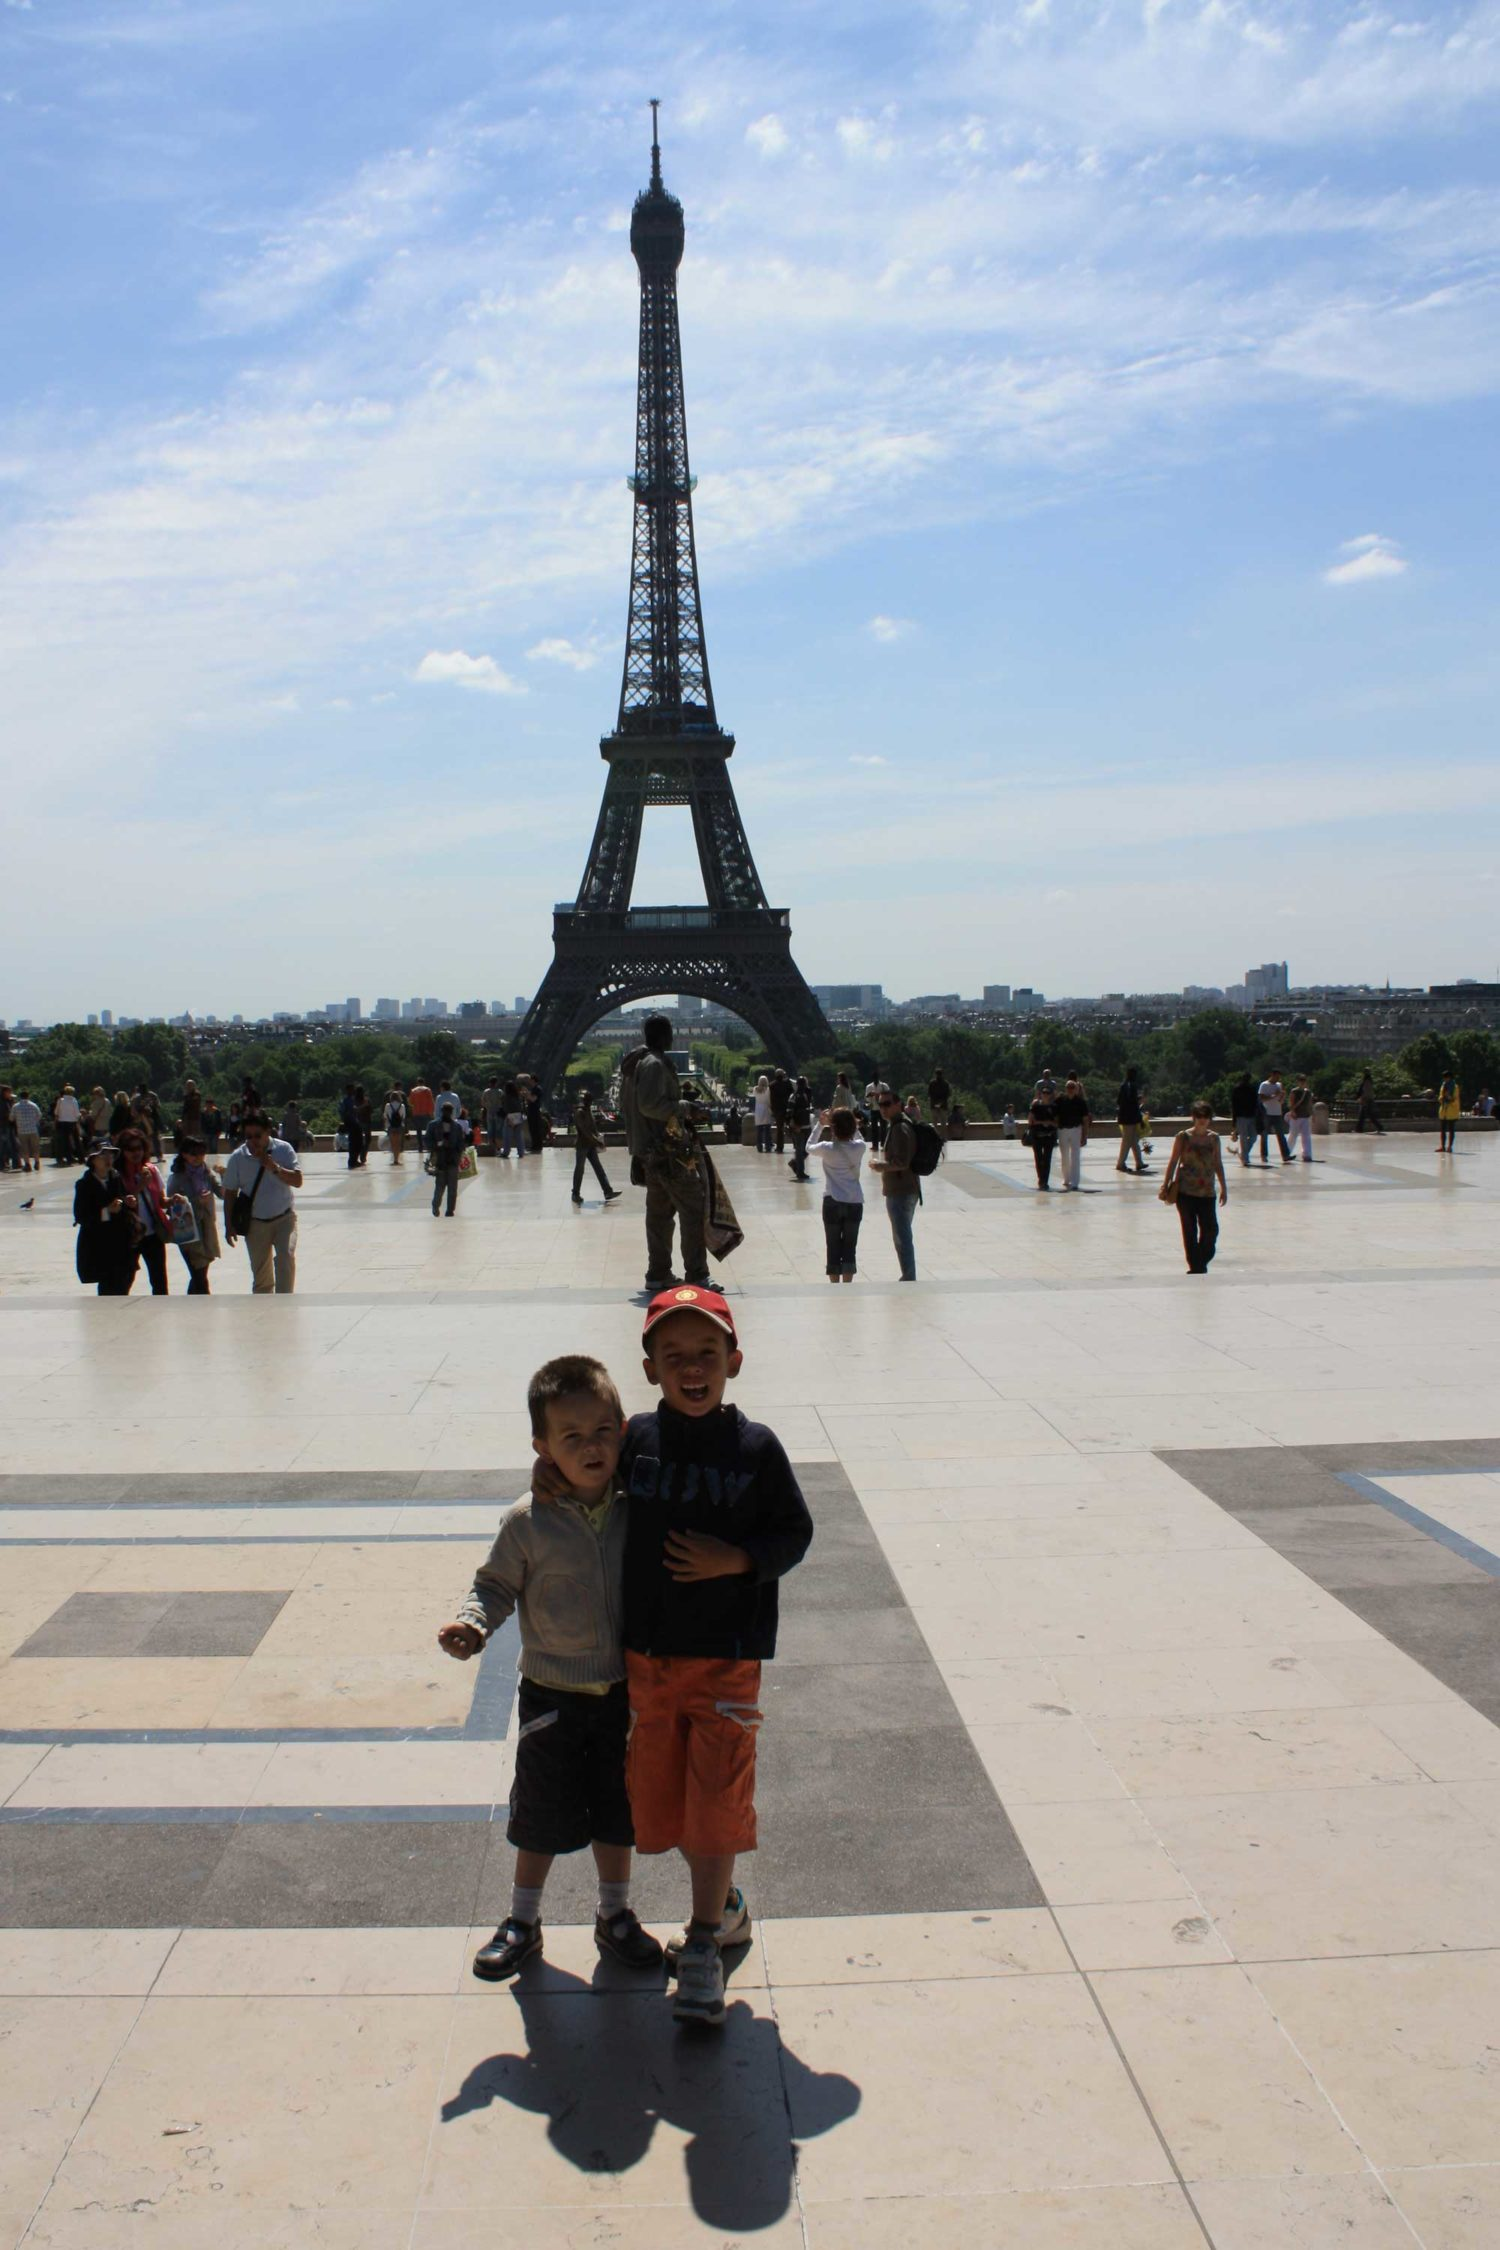 Children in front of the Eiffel Tower in Paris